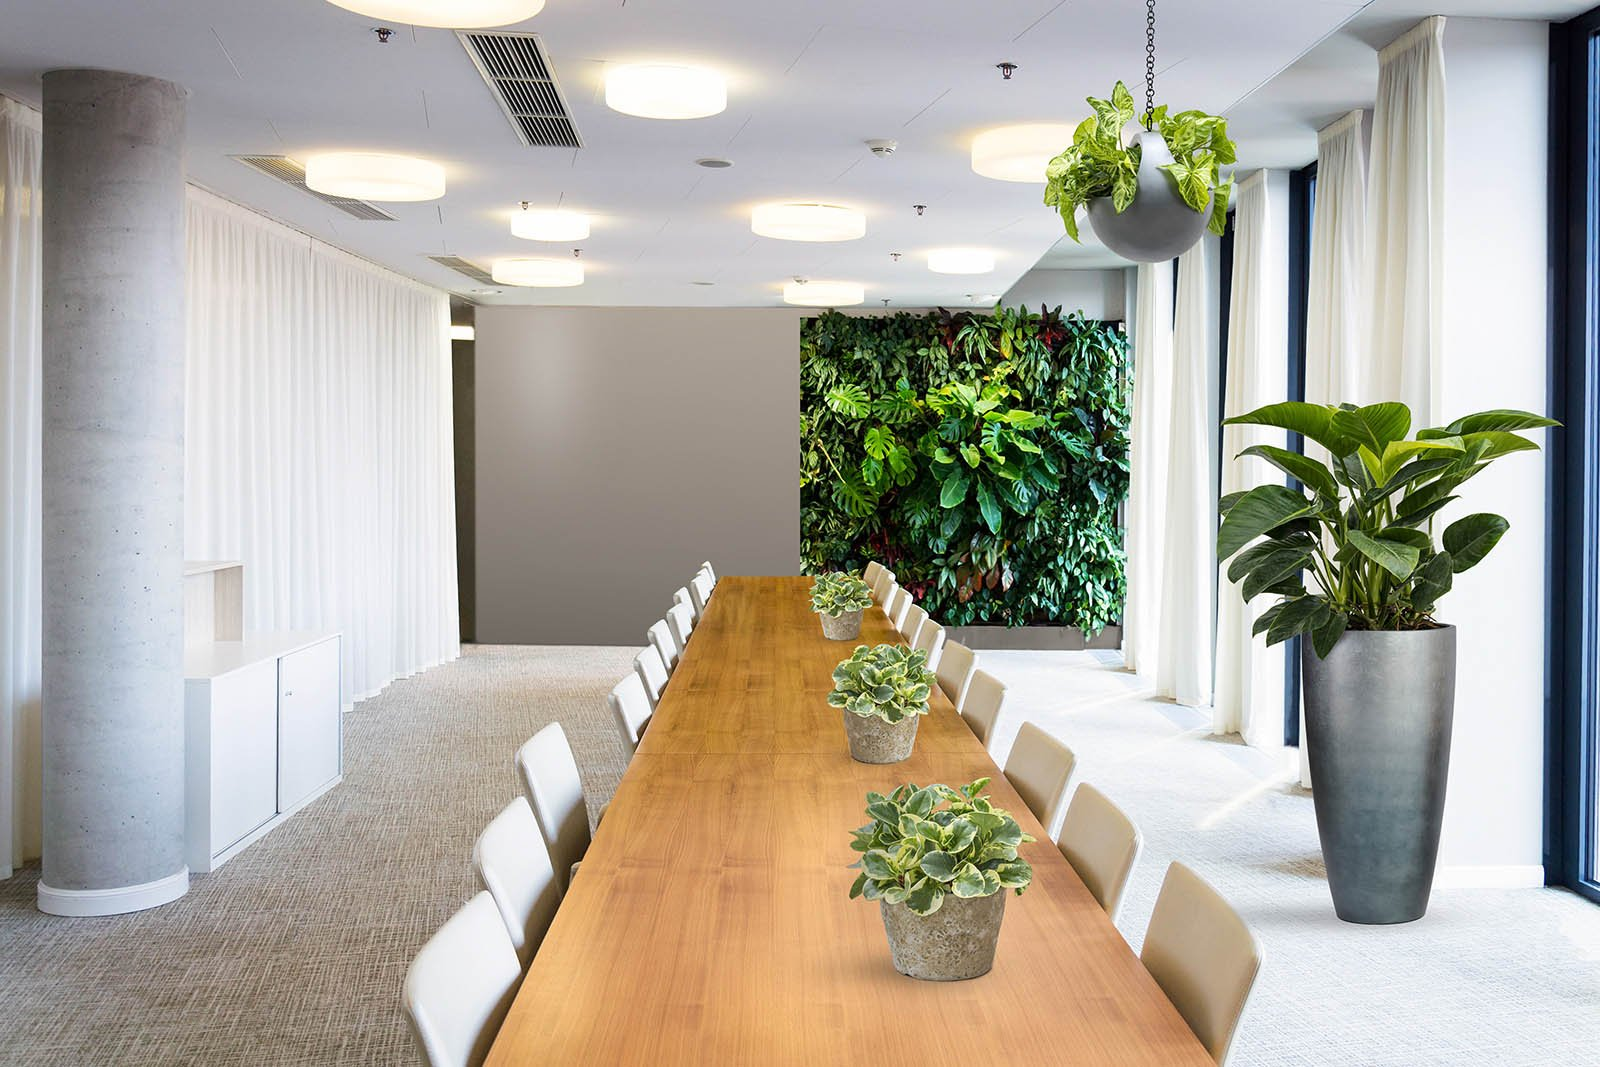 Mock-up of an office space with one half filled with a green wall, lush plants and hanging greenery, the other half bare